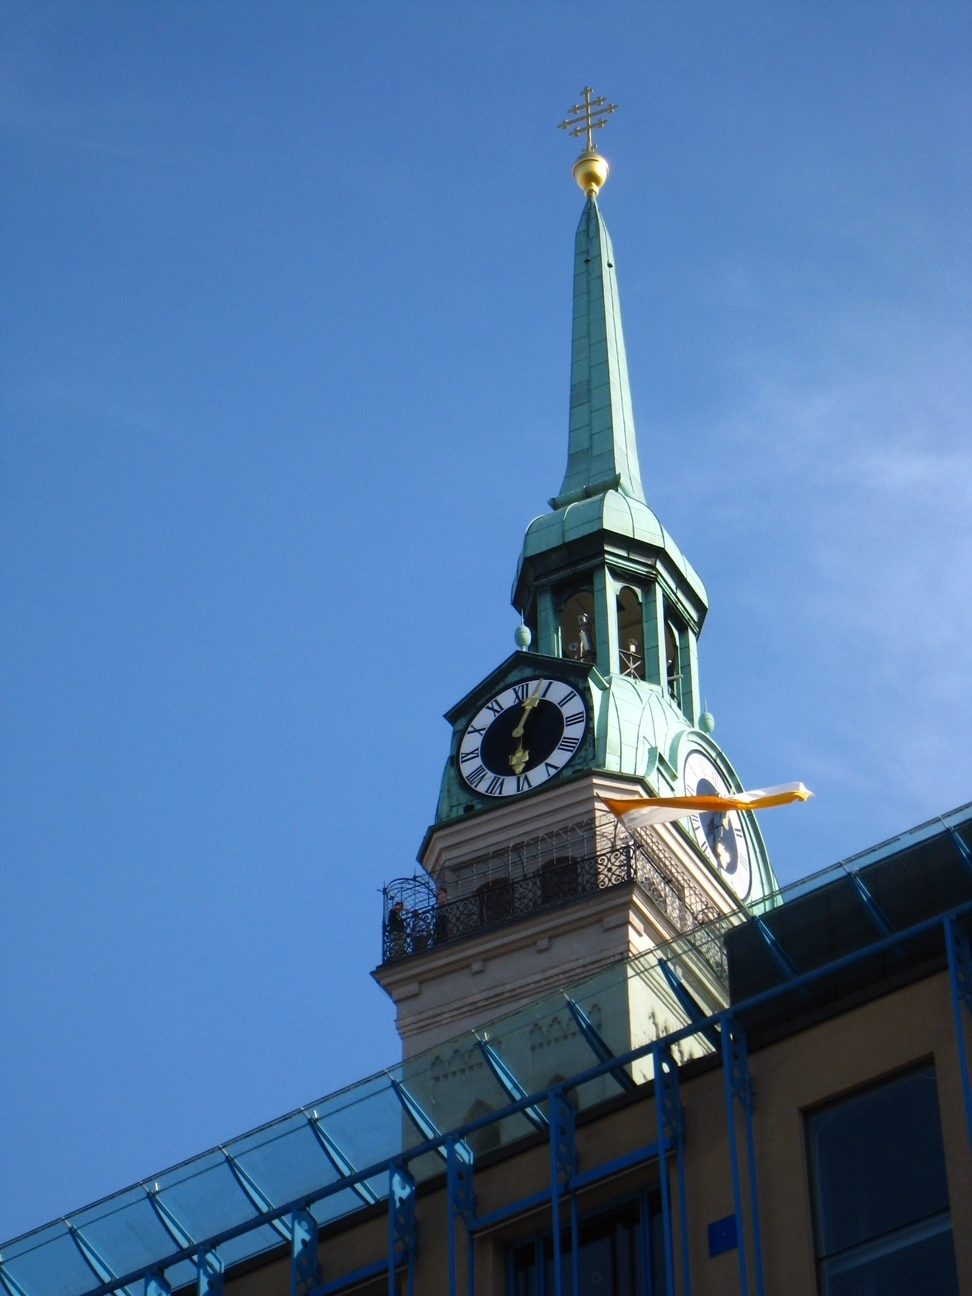 The tower of St. Peterskirche (Photo courtesy of Pauline Trummel)